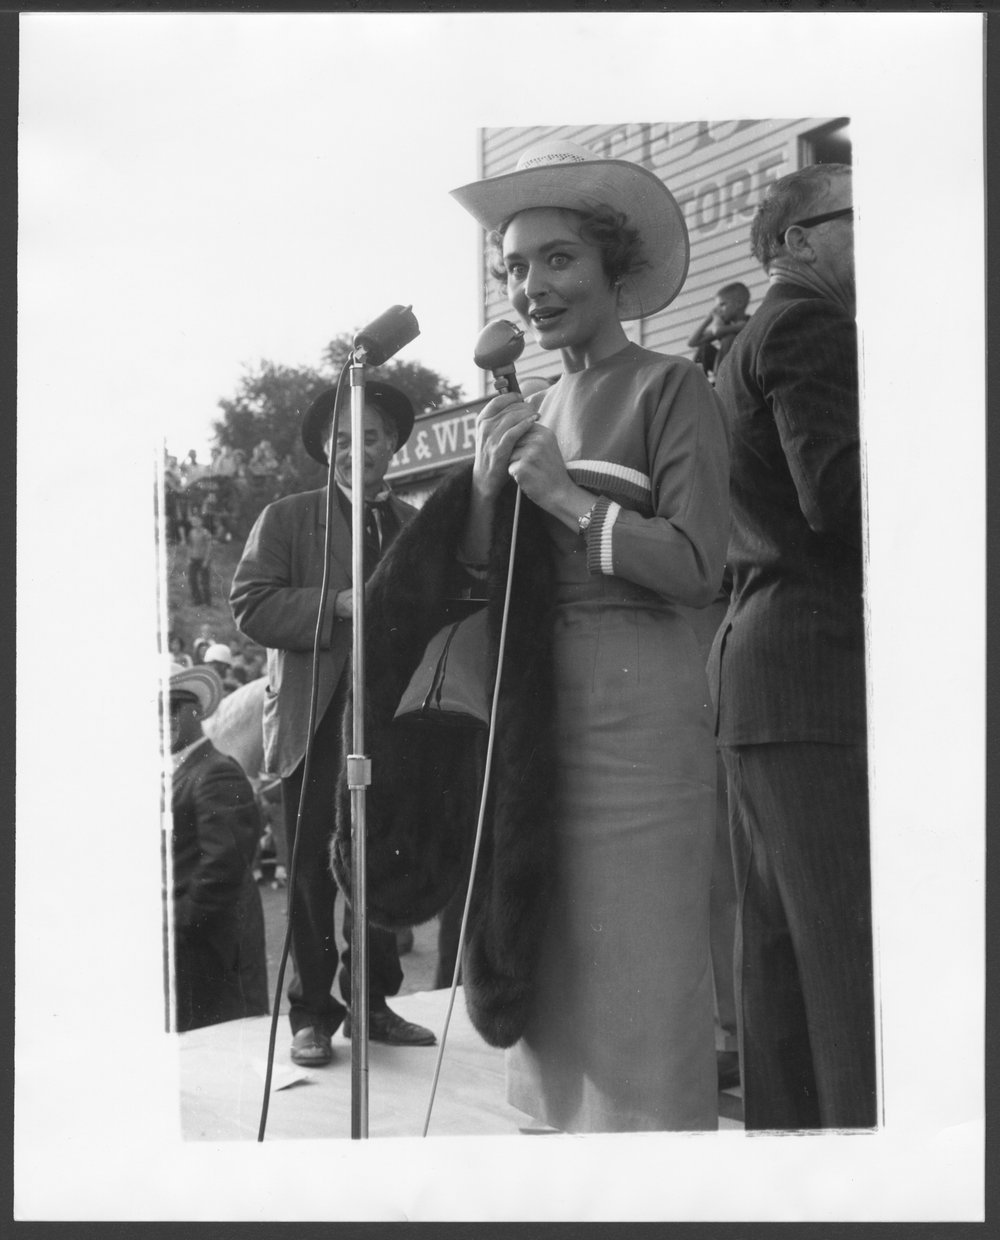 'Gunsmoke' cast members at a Kansas Centennial event - An unidentified woman at the microphone with Milburn Stone in the background.  The photograph was taken on Front Street in Dodge City, Kansas.